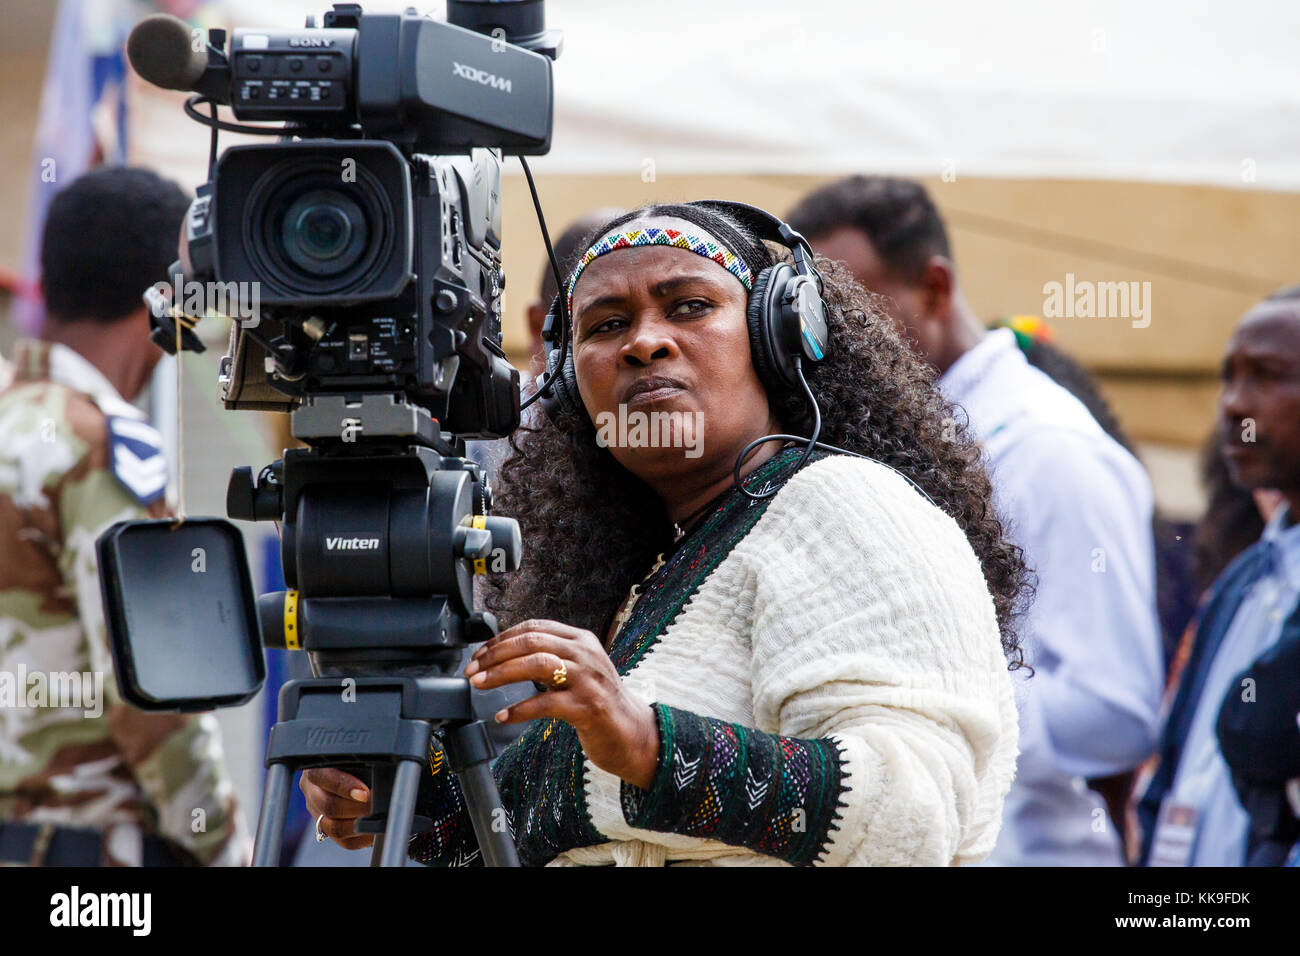 Female camera operator dressed traditionally with braided hair and head band at the Ashenda Festival, Mekele, Ethiopia. Stock Photo